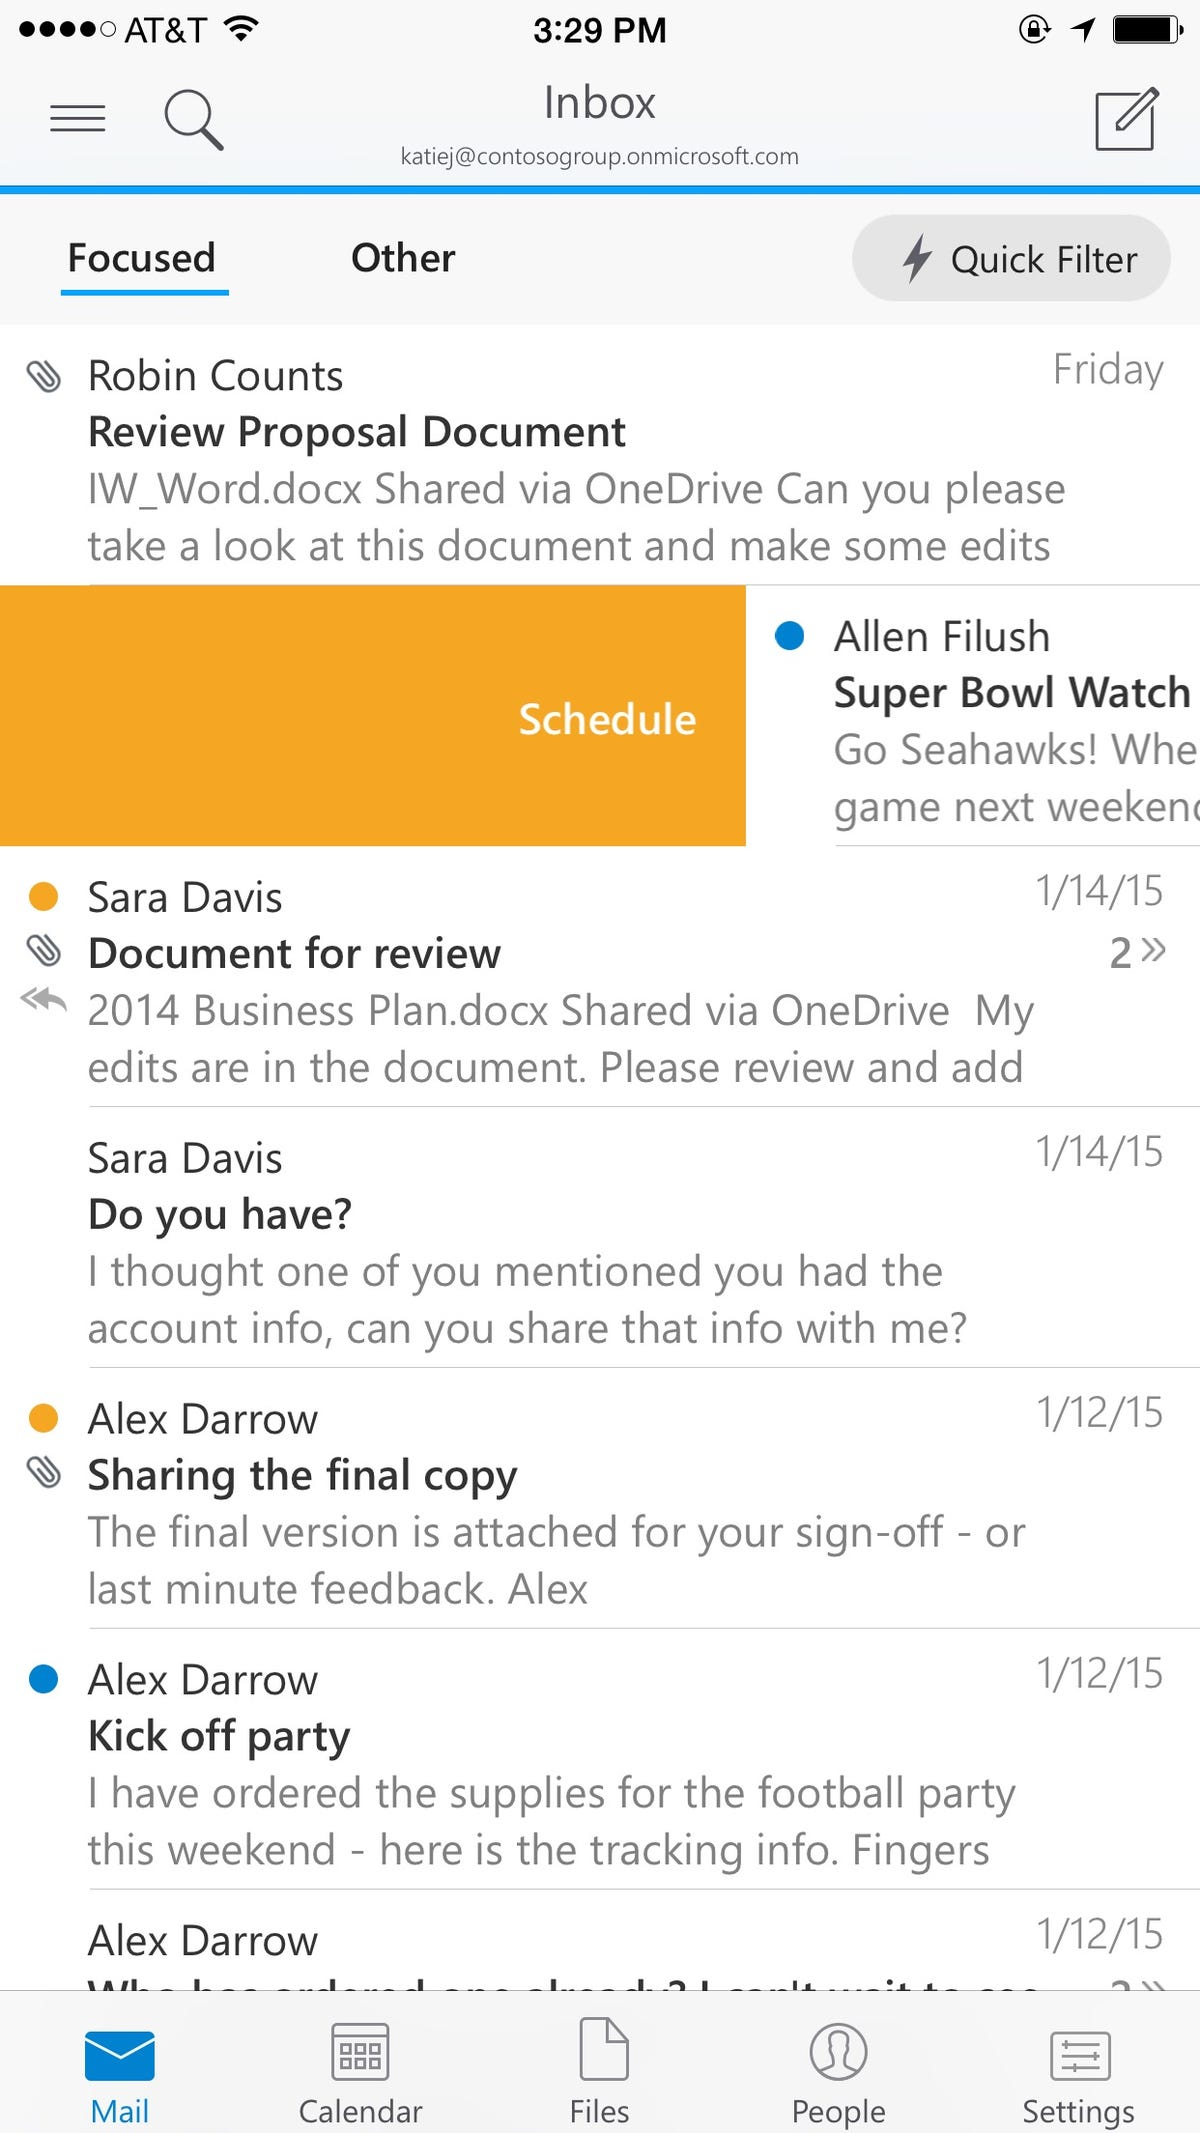 I spent two days using the new Outlook for iPhones: Baig